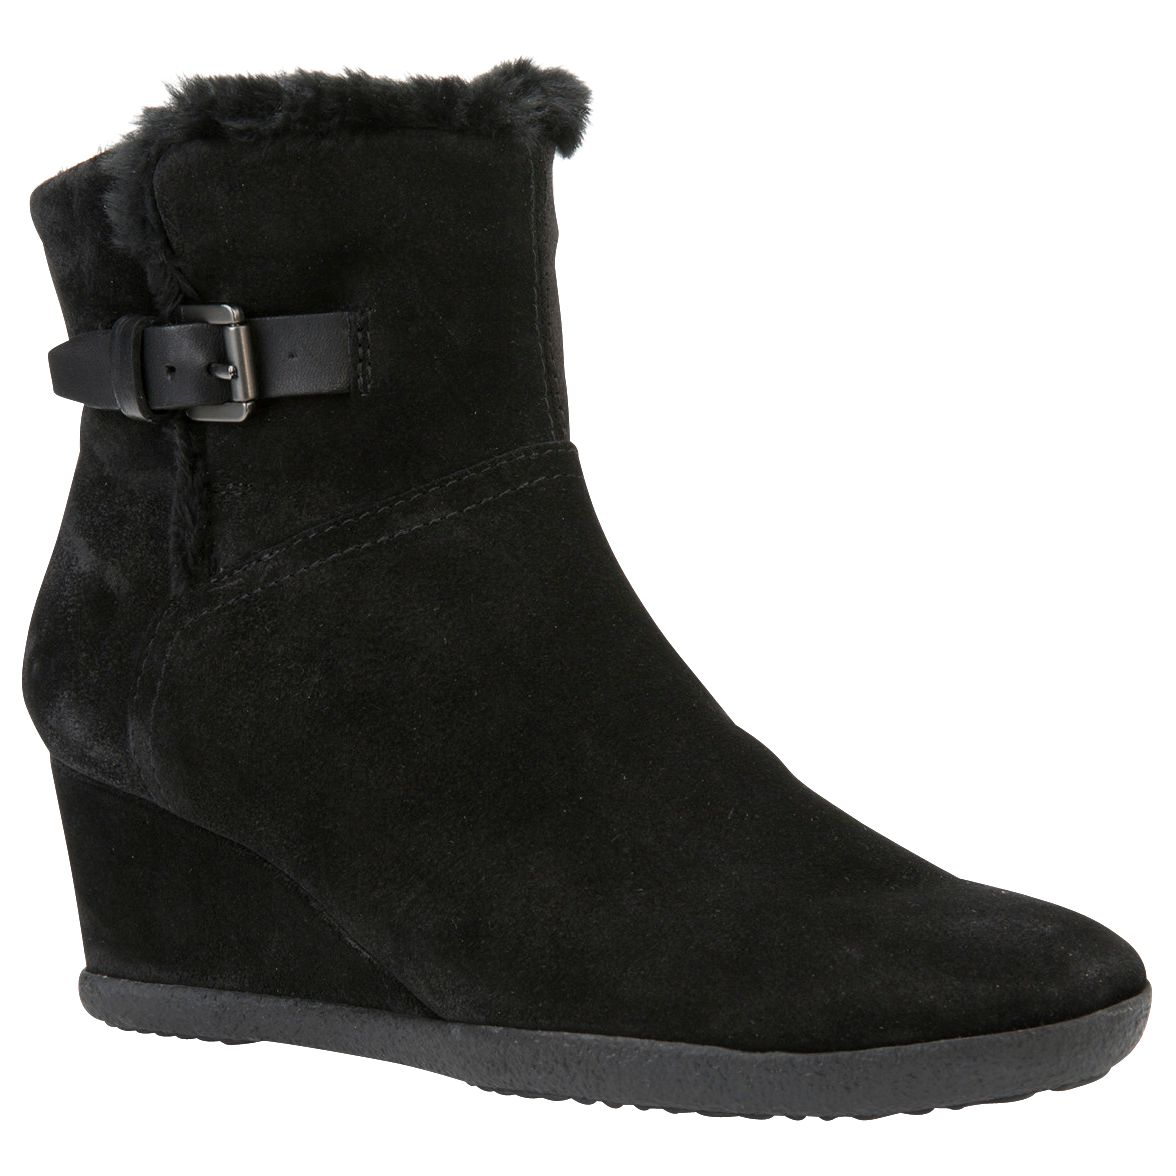 Geox Geox Amelia Wedge Ankle Boots